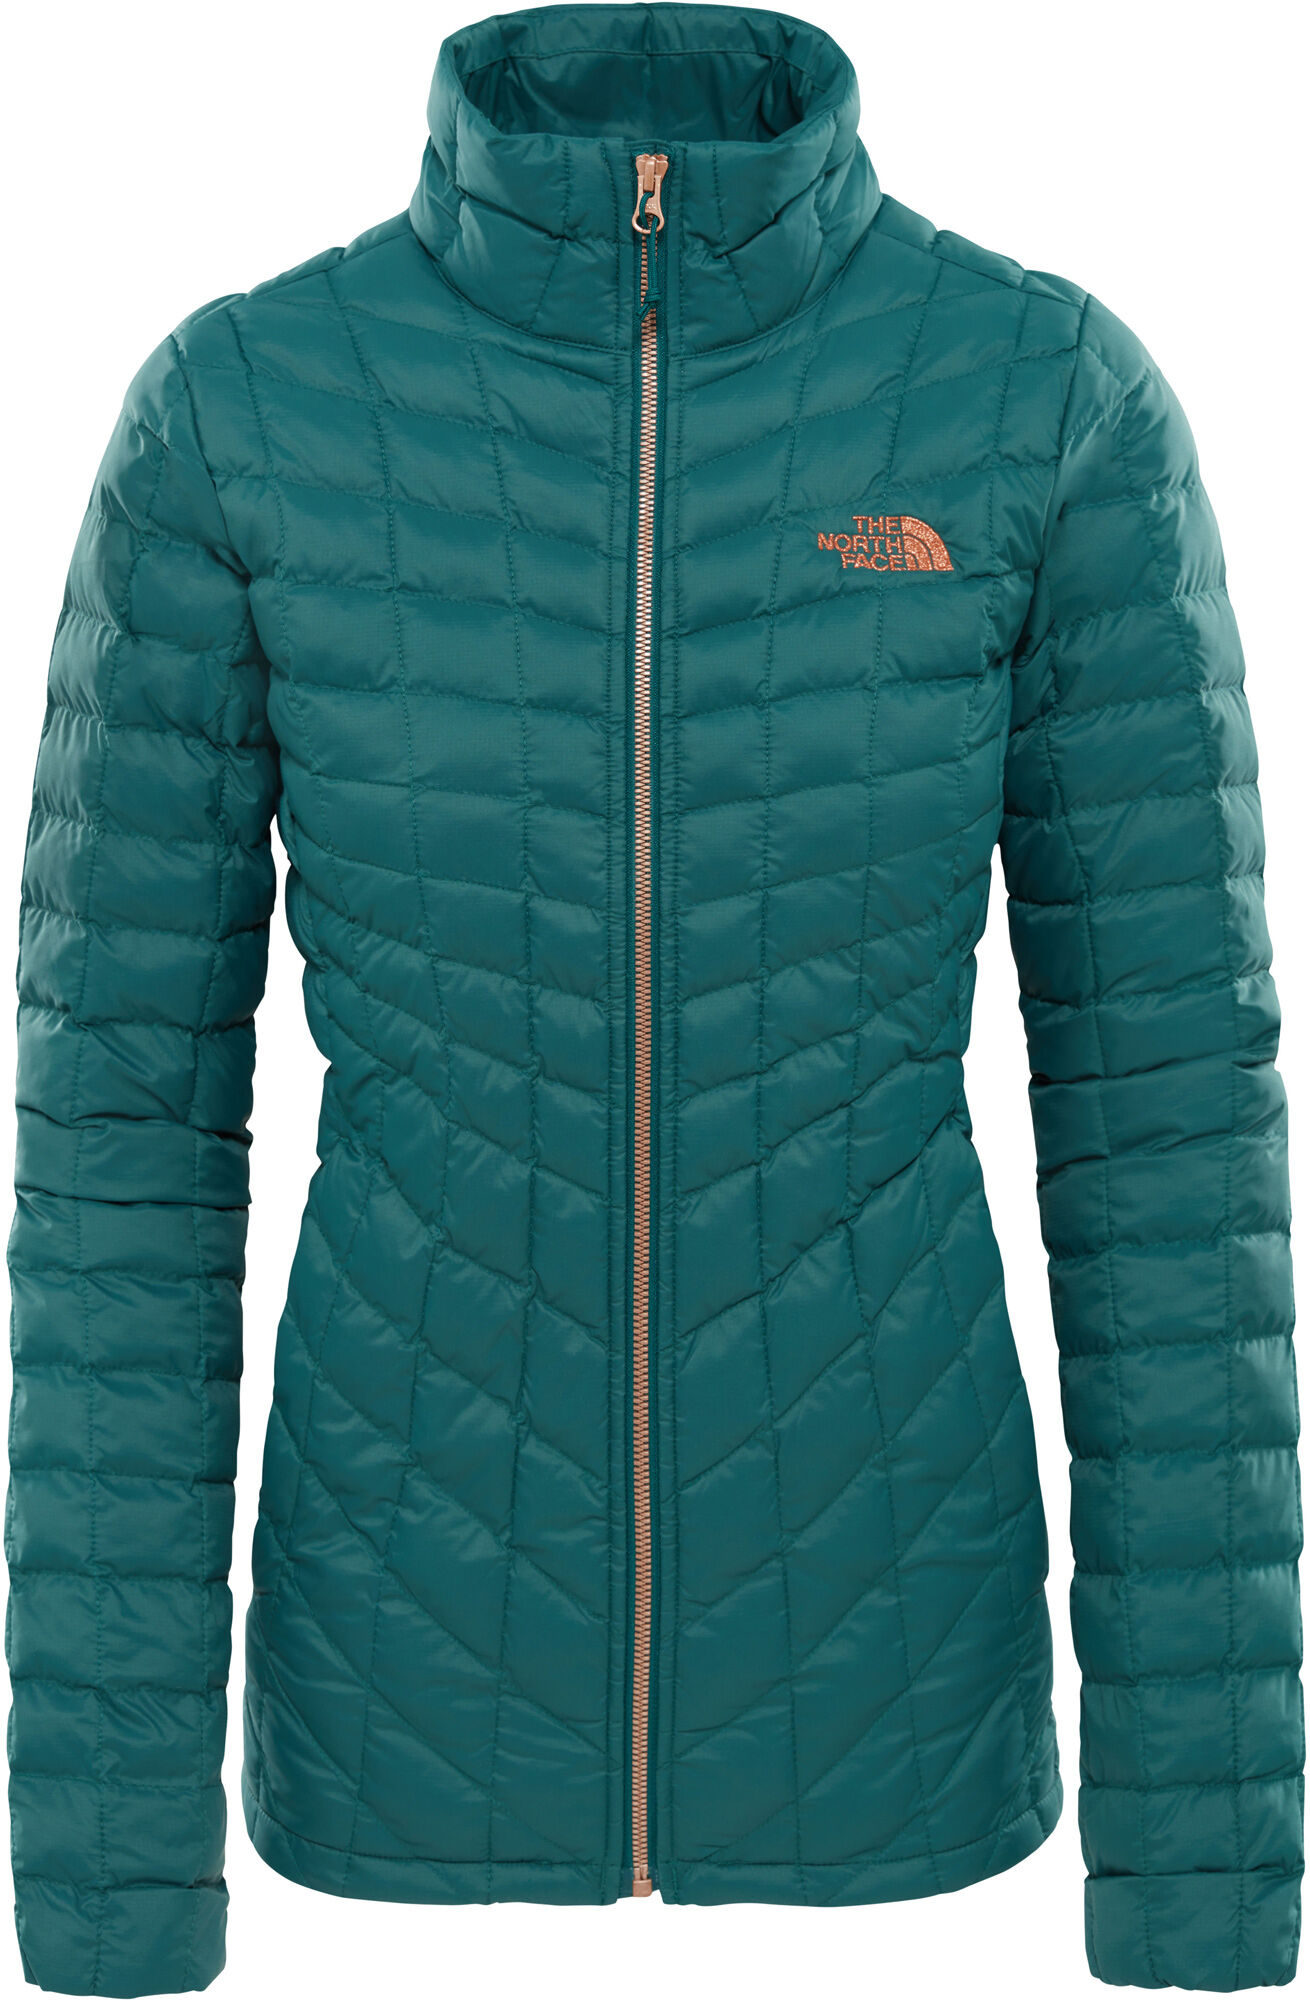 The North Face T93brl Chaqueta con cremallera Thermoball Mujer